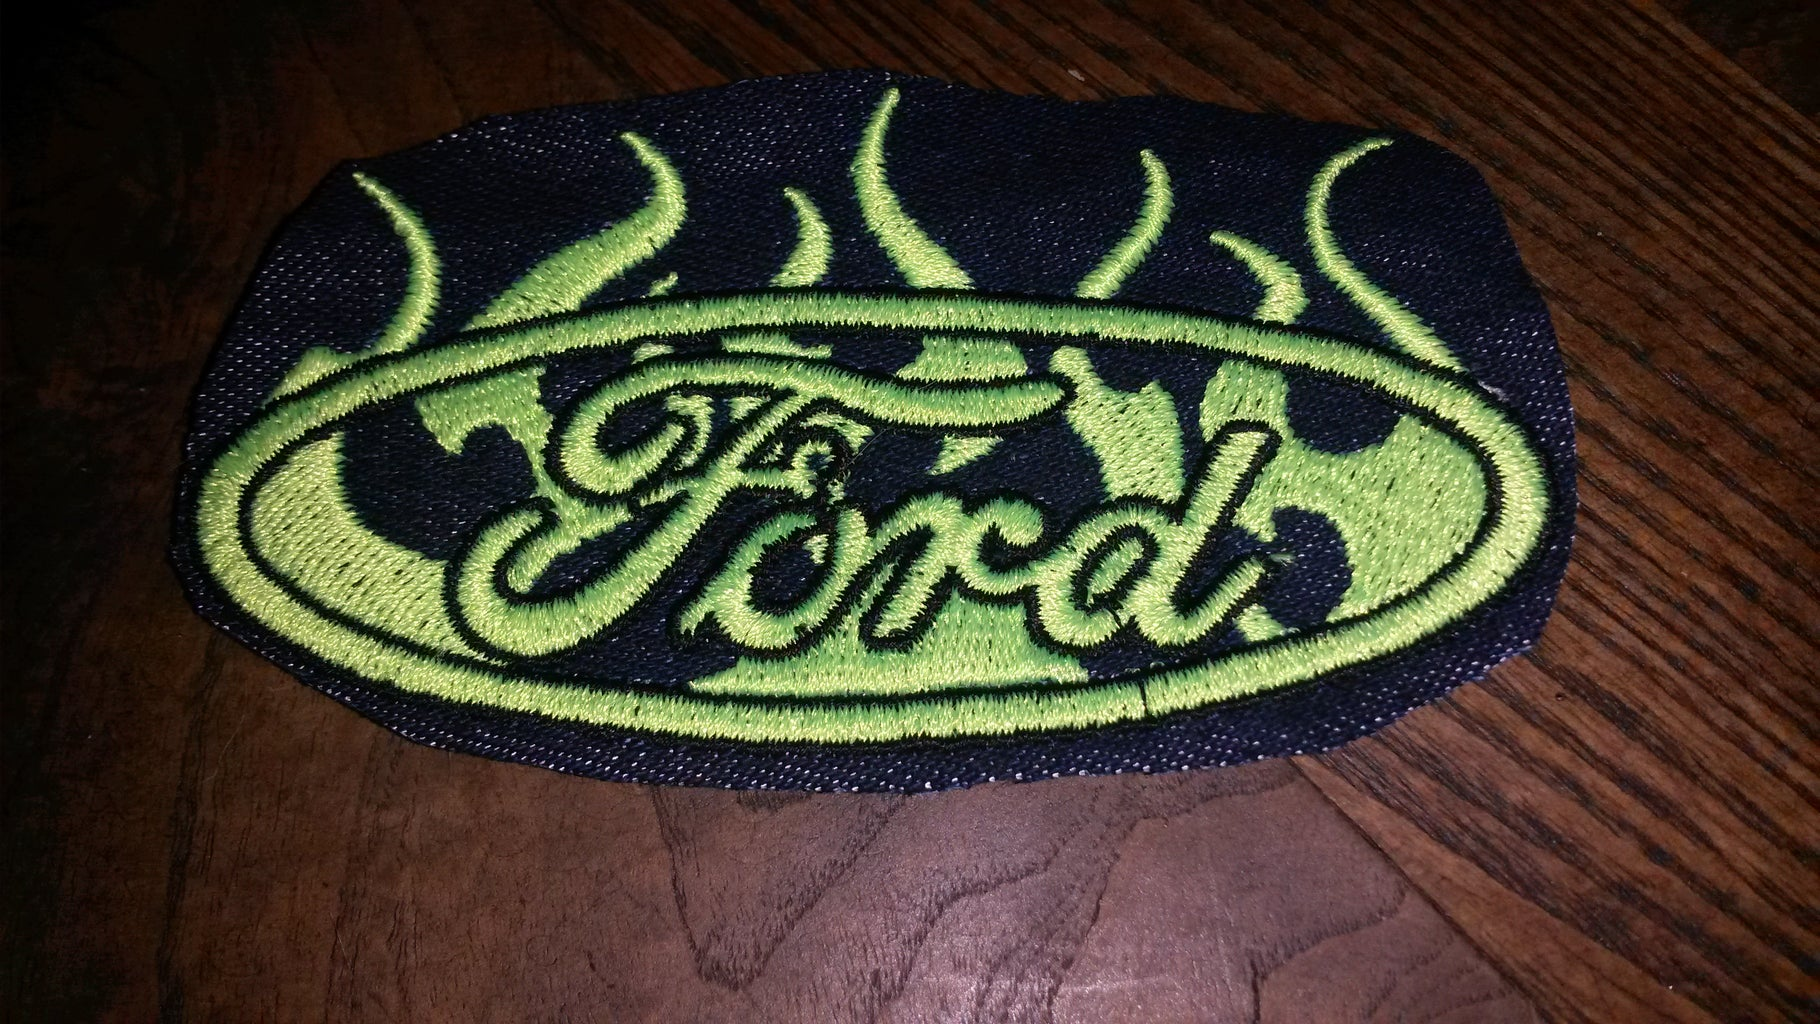 Embordering Jean Patches